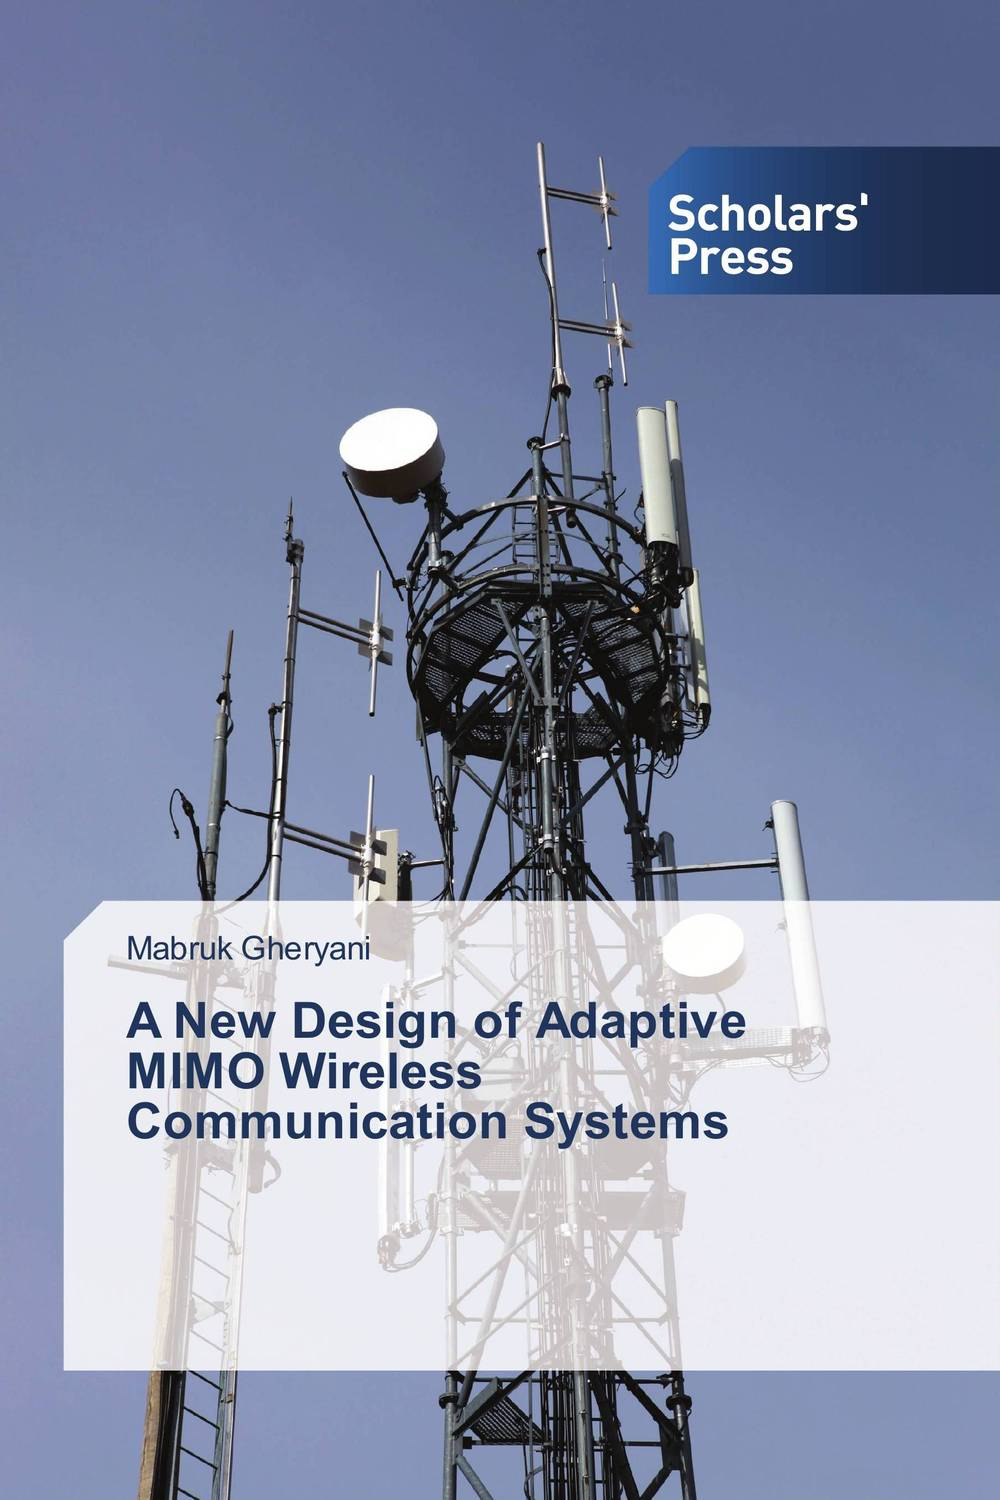 A New Design of Adaptive MIMO Wireless Communication Systems